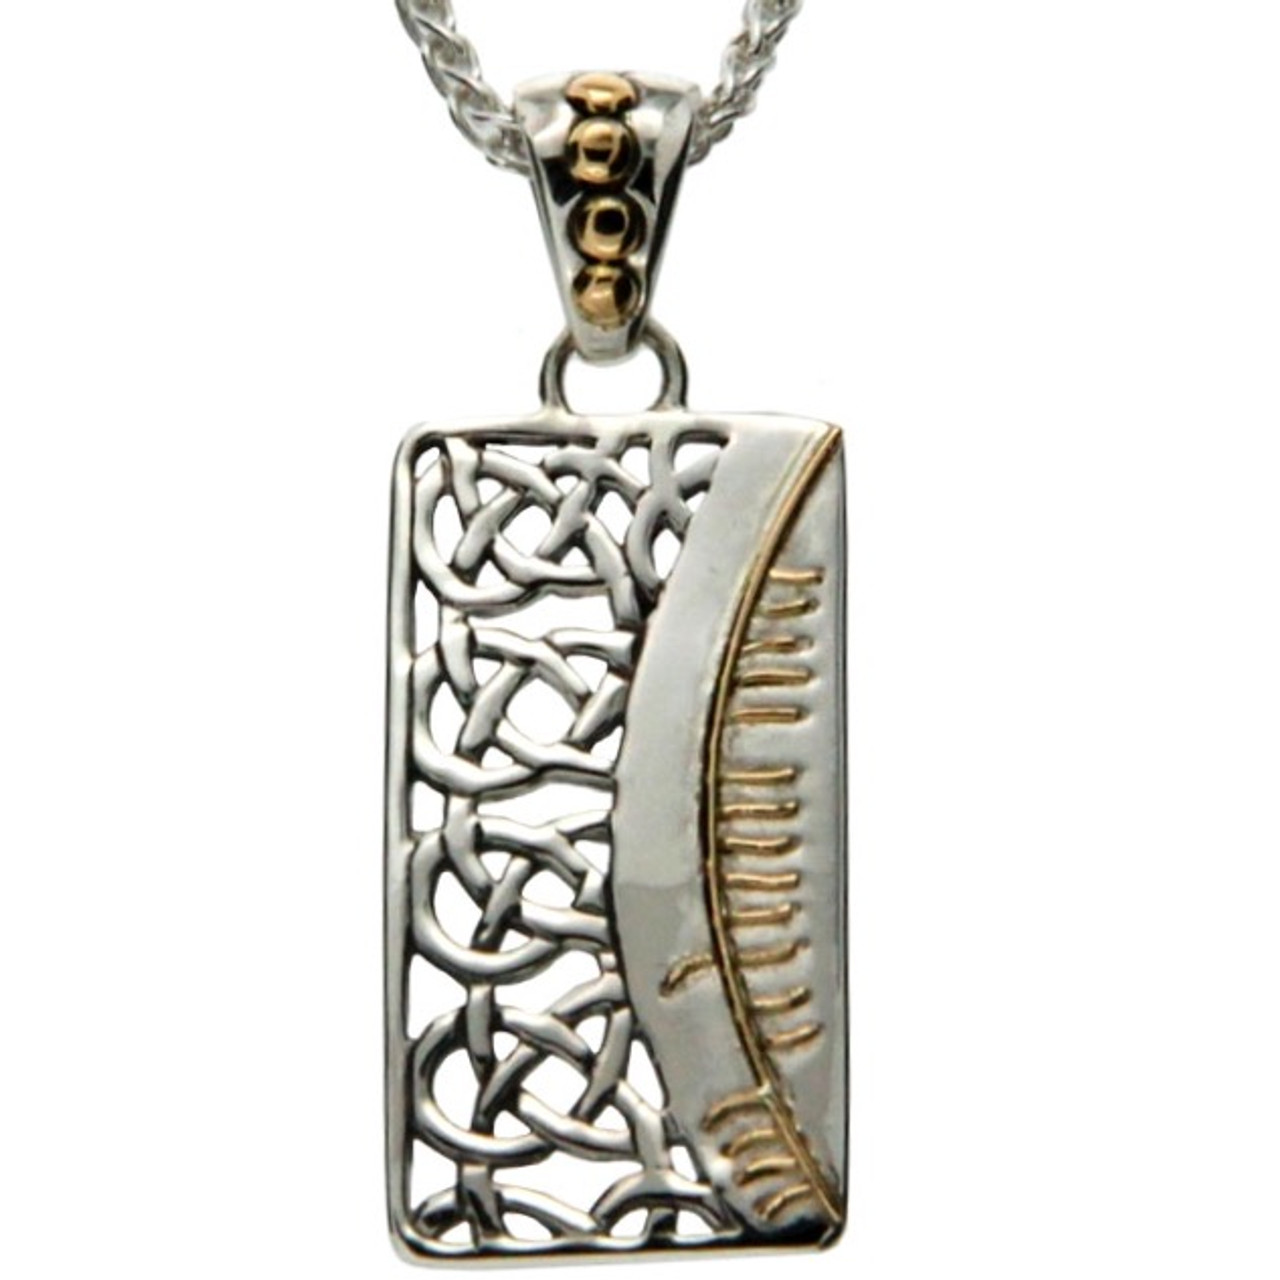 Ss and 18k gold ogham pendant clann family ppx9009 1 keith jack ss and 18k gold ogham pendant clann family ppx9009 1 keith jack aloadofball Images